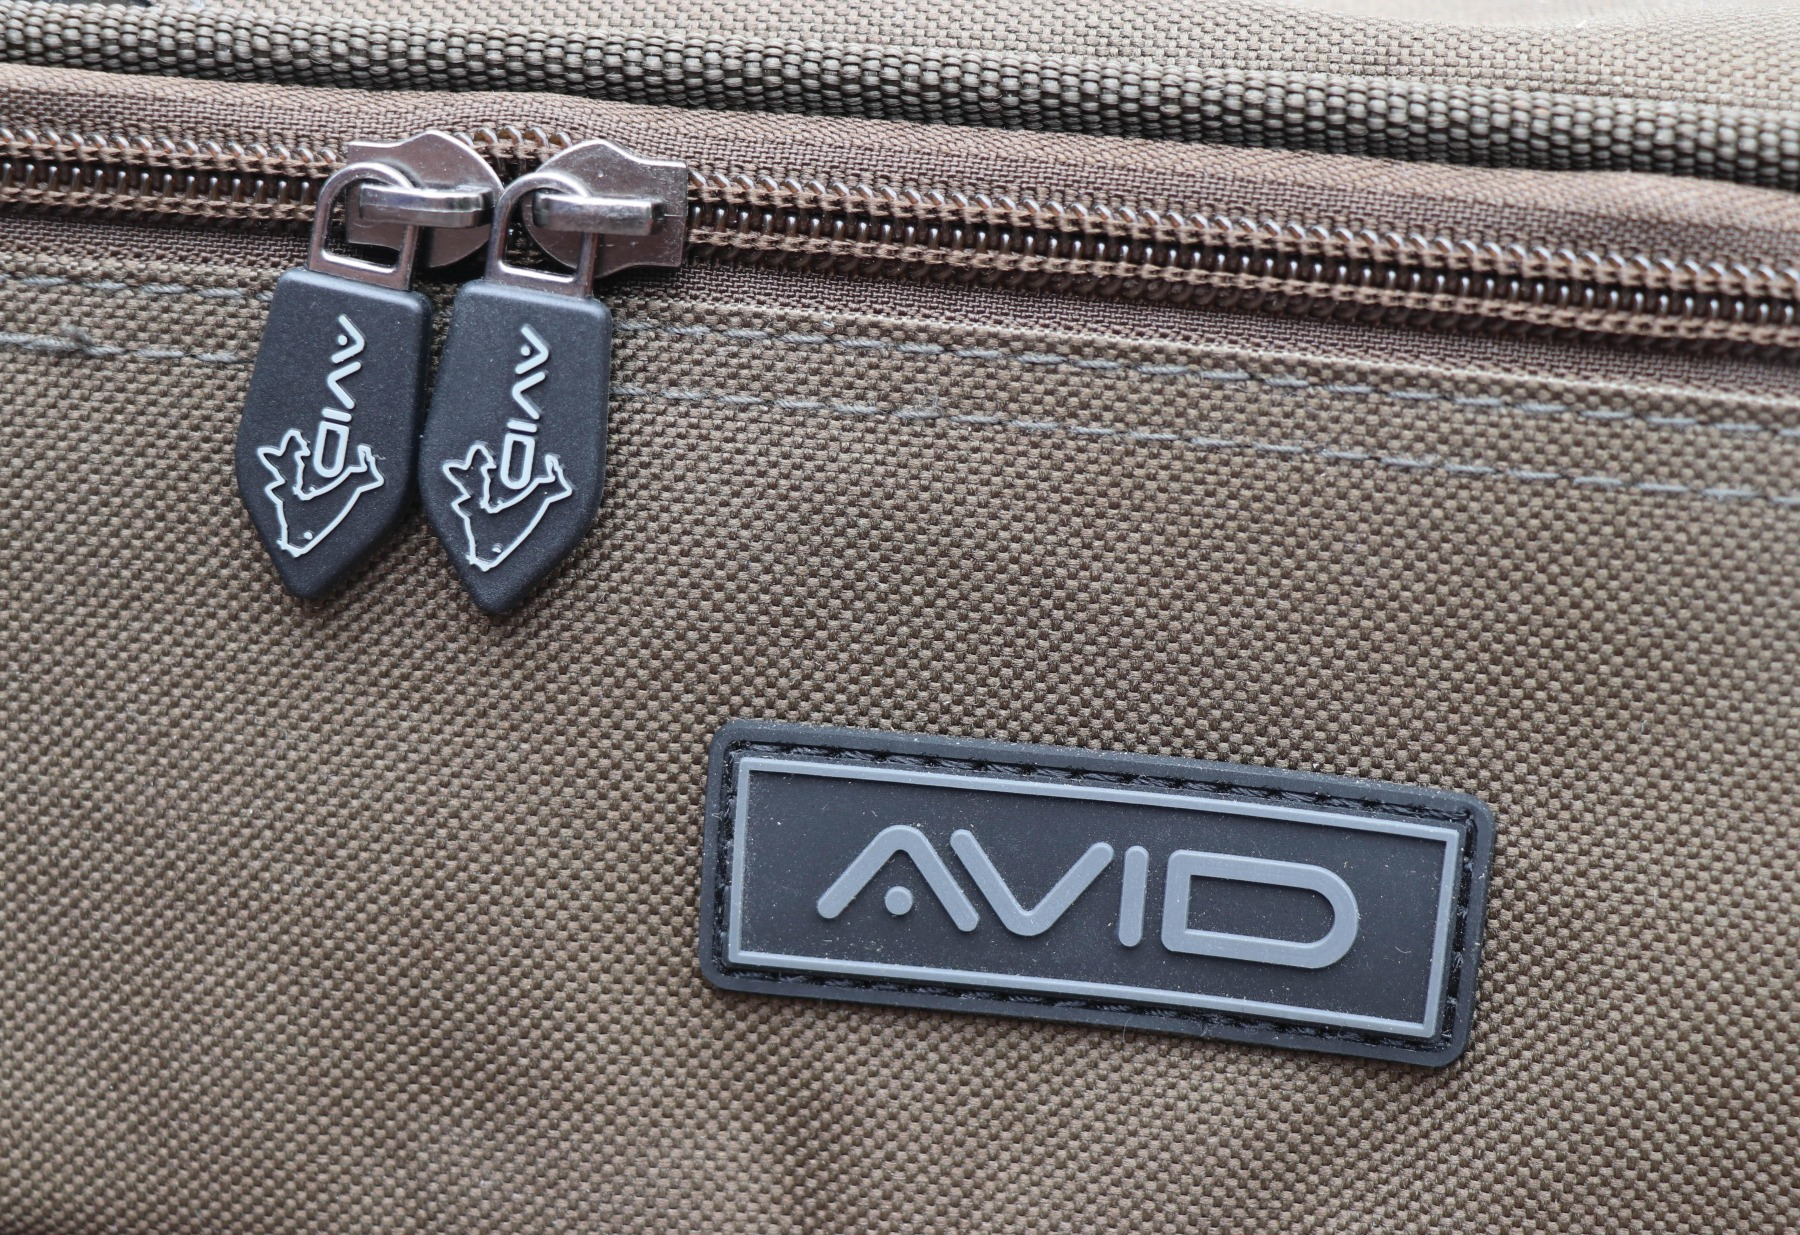 The Avid A-Spec bag: a relatively new addition